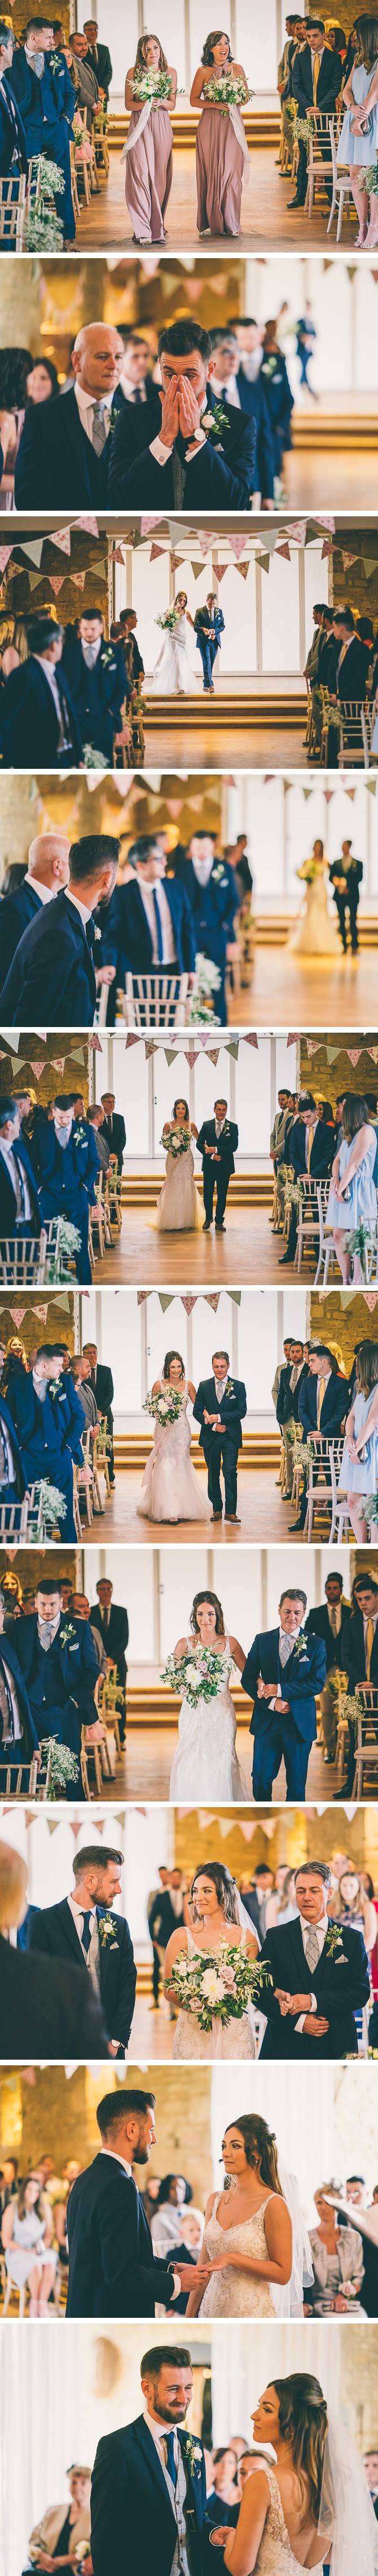 Bridal Party Entrance at Great Tythe Barn